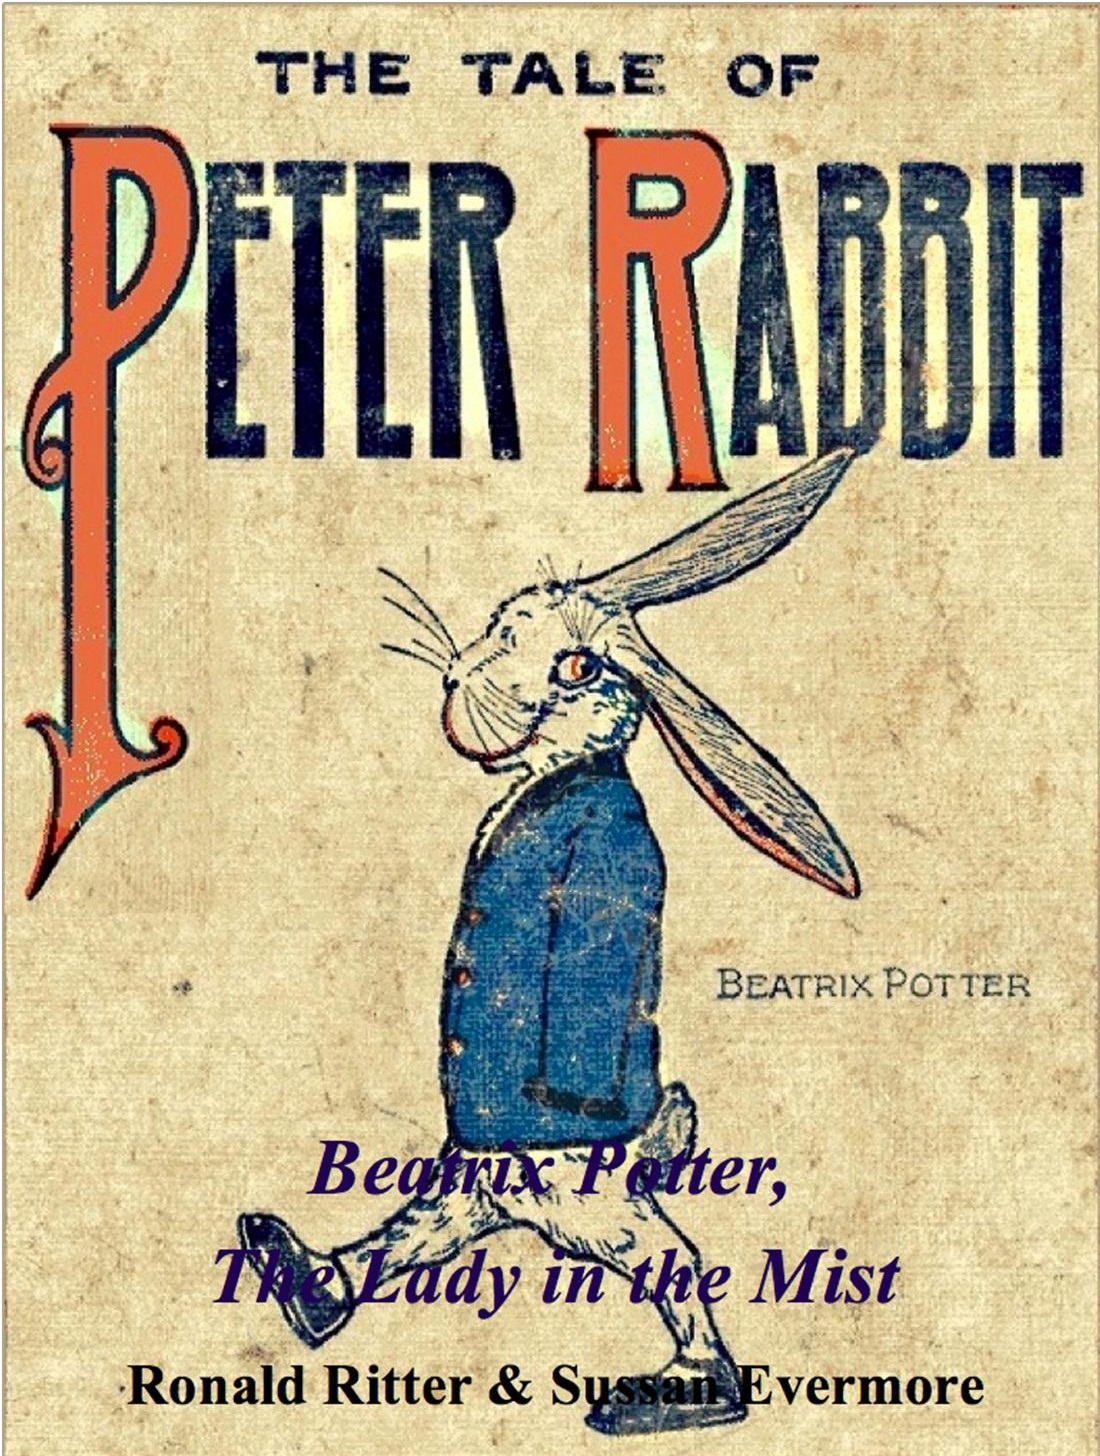 The Tale of Peter Rabbit & Beatrix Potter, The Lady in the Mist